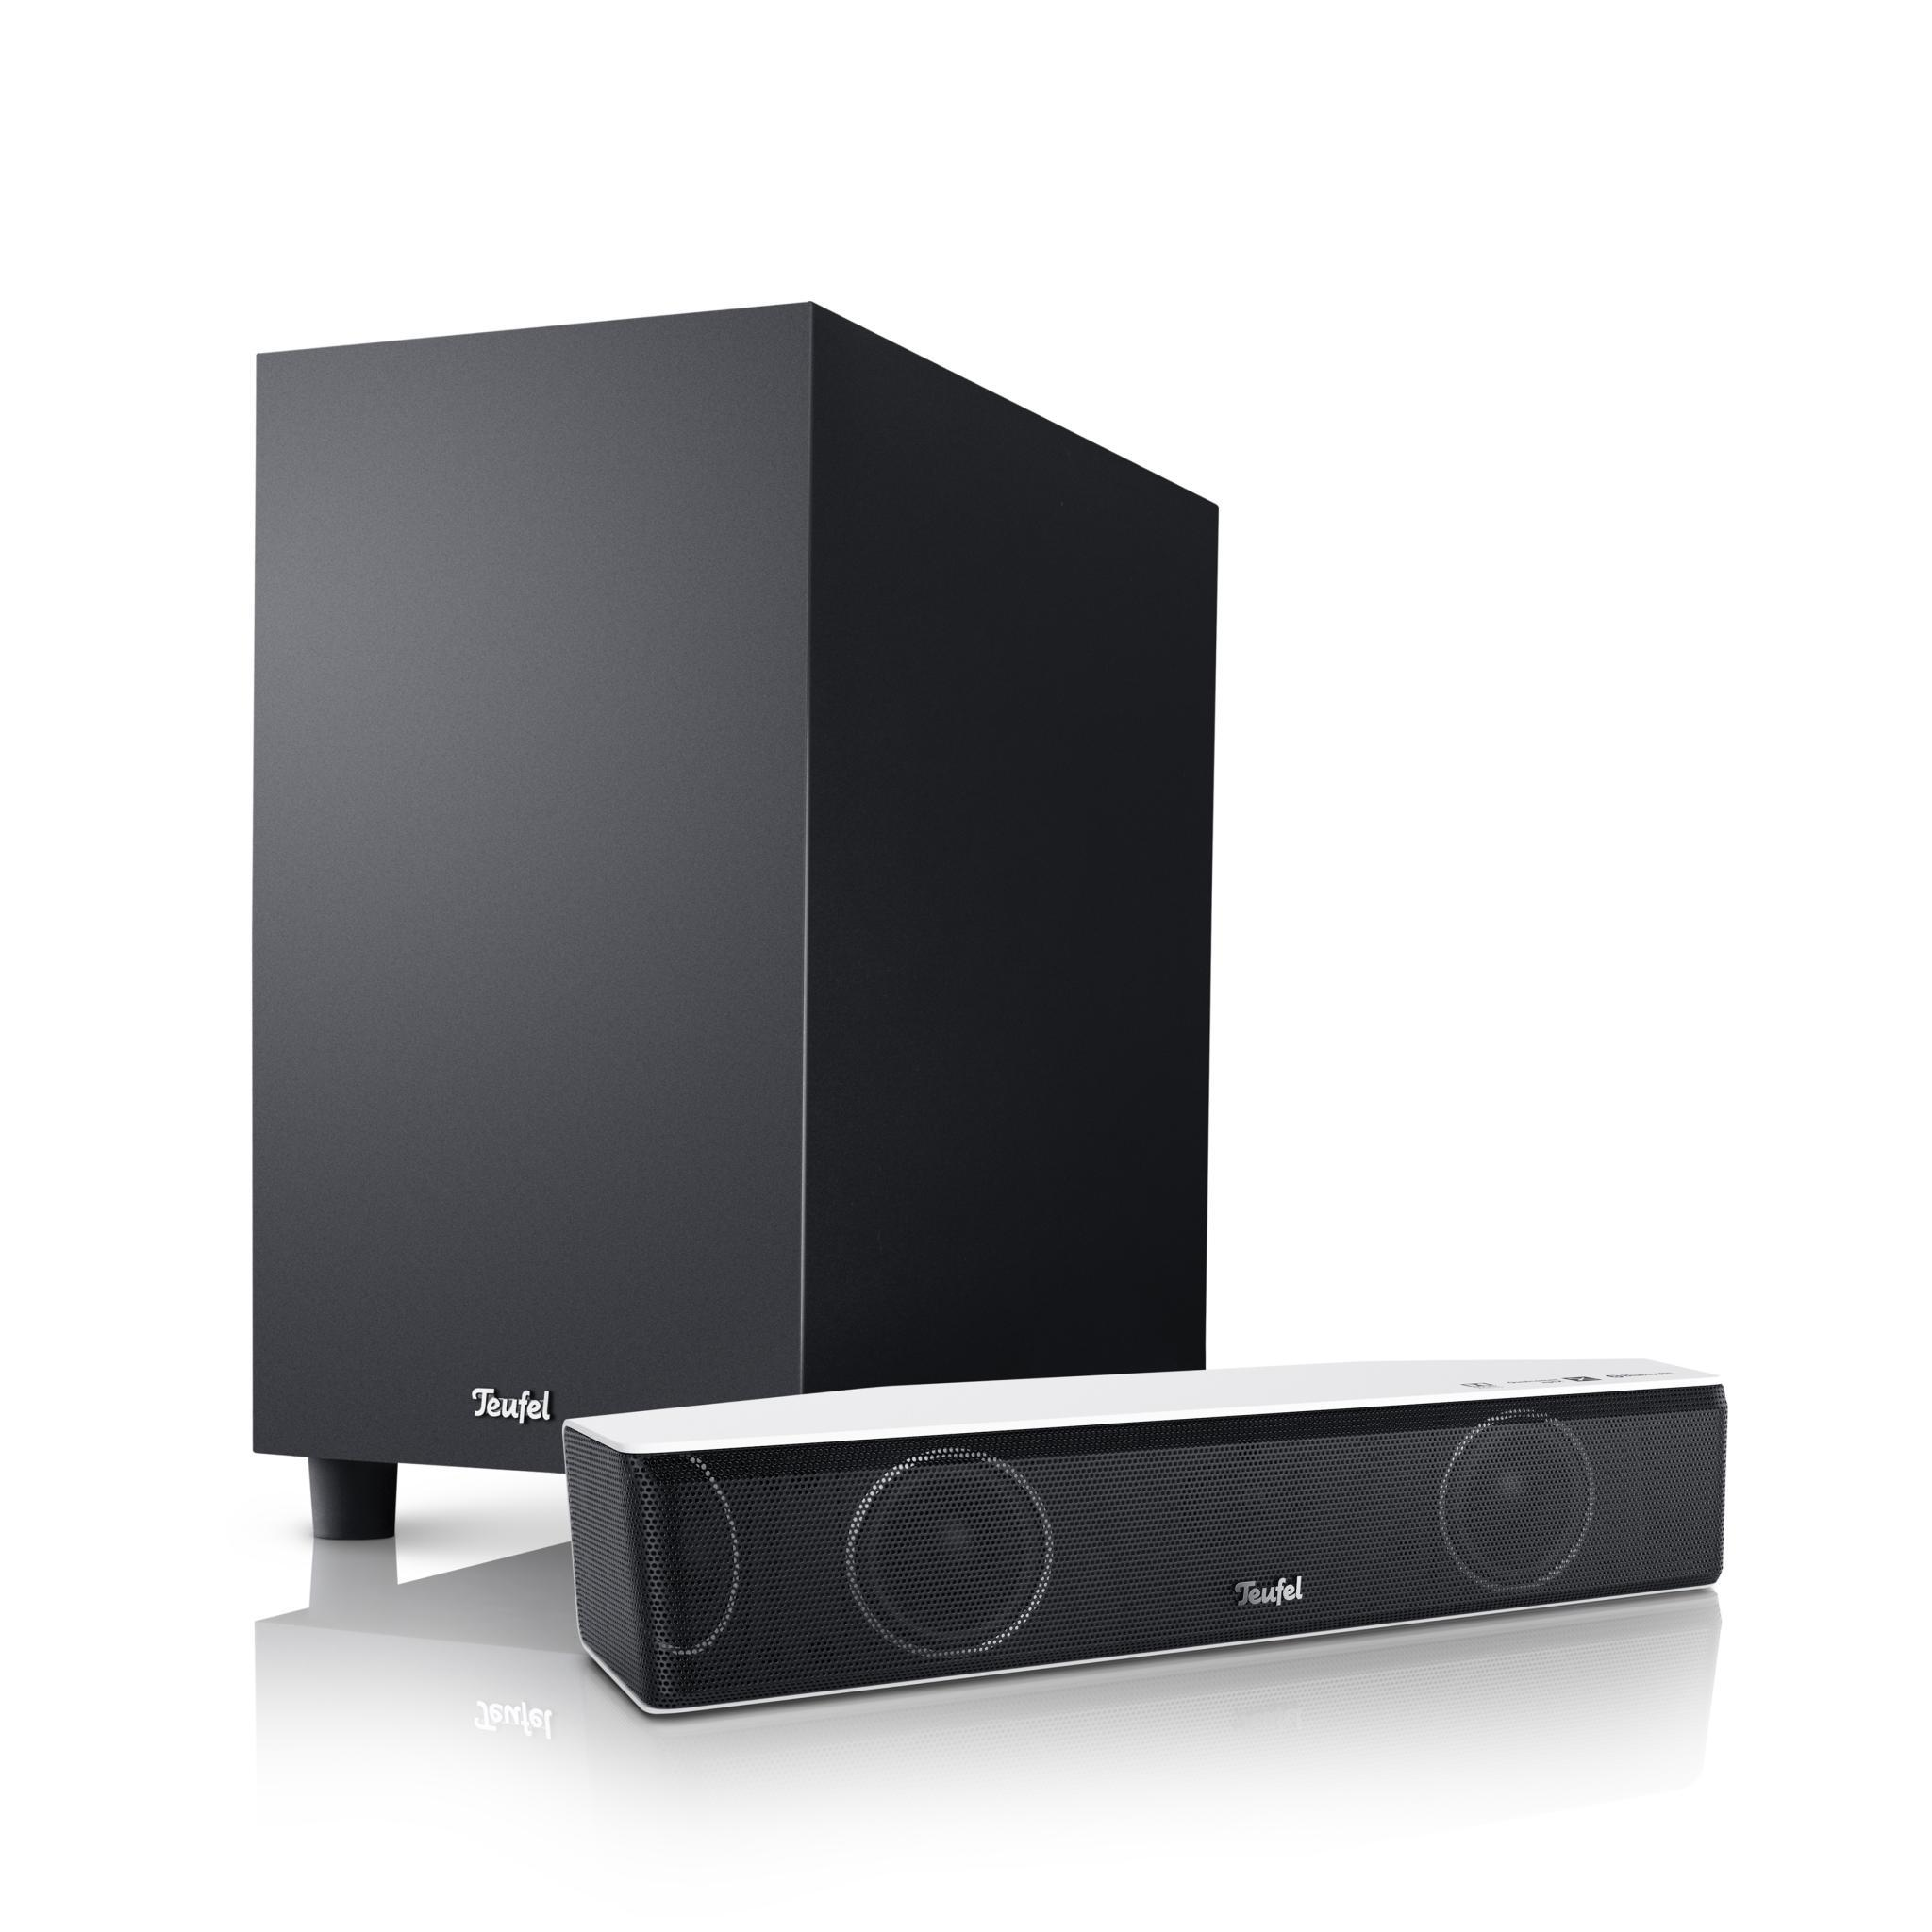 Teufel Cinebar One Soundbar: